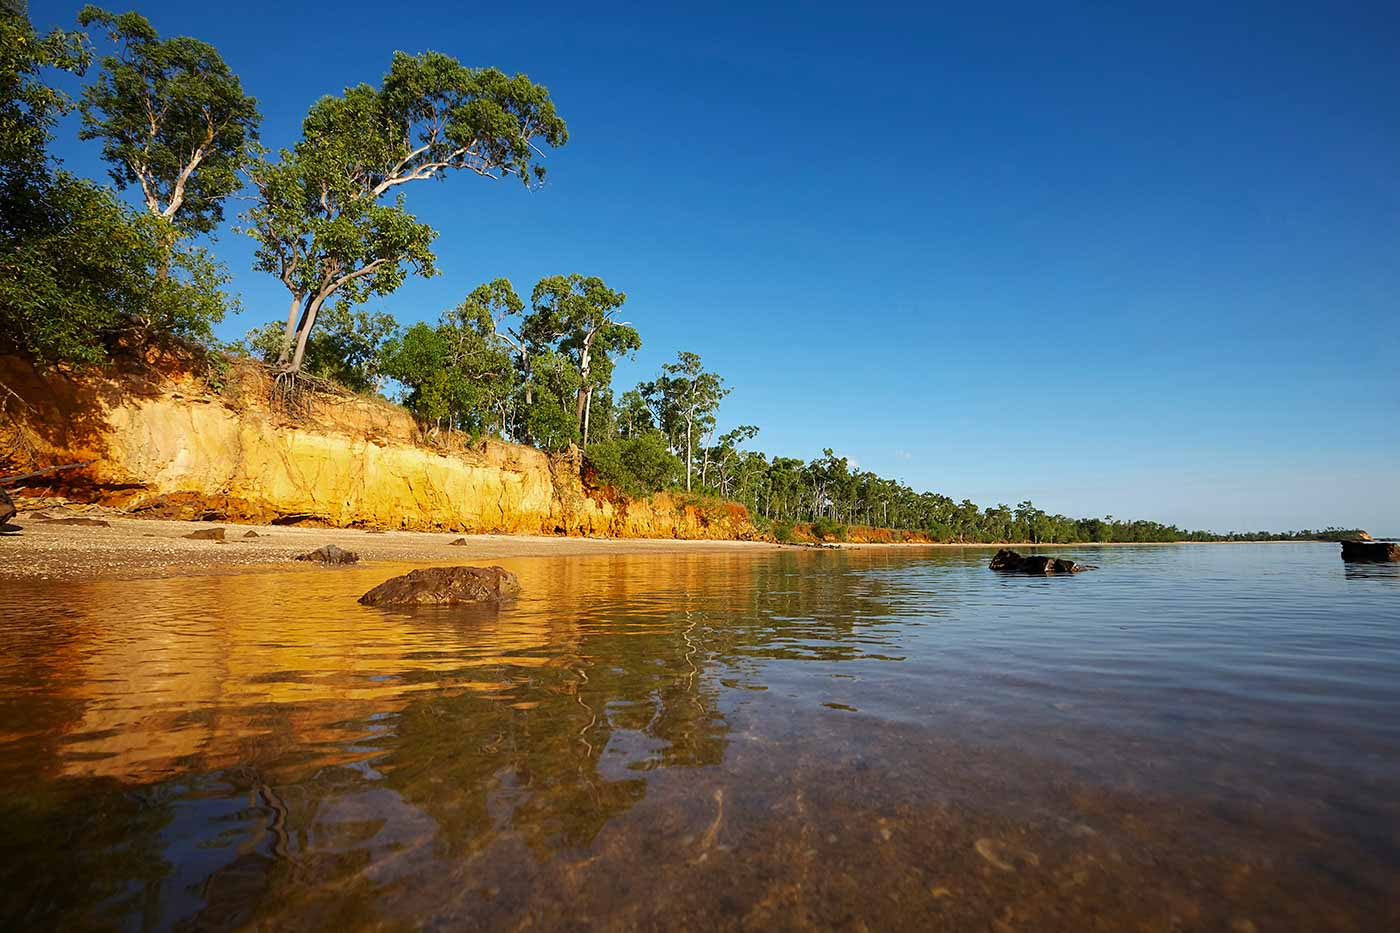 View of yellow ochre sheer rock formations and trees running alongside a river with clear and calm waters.